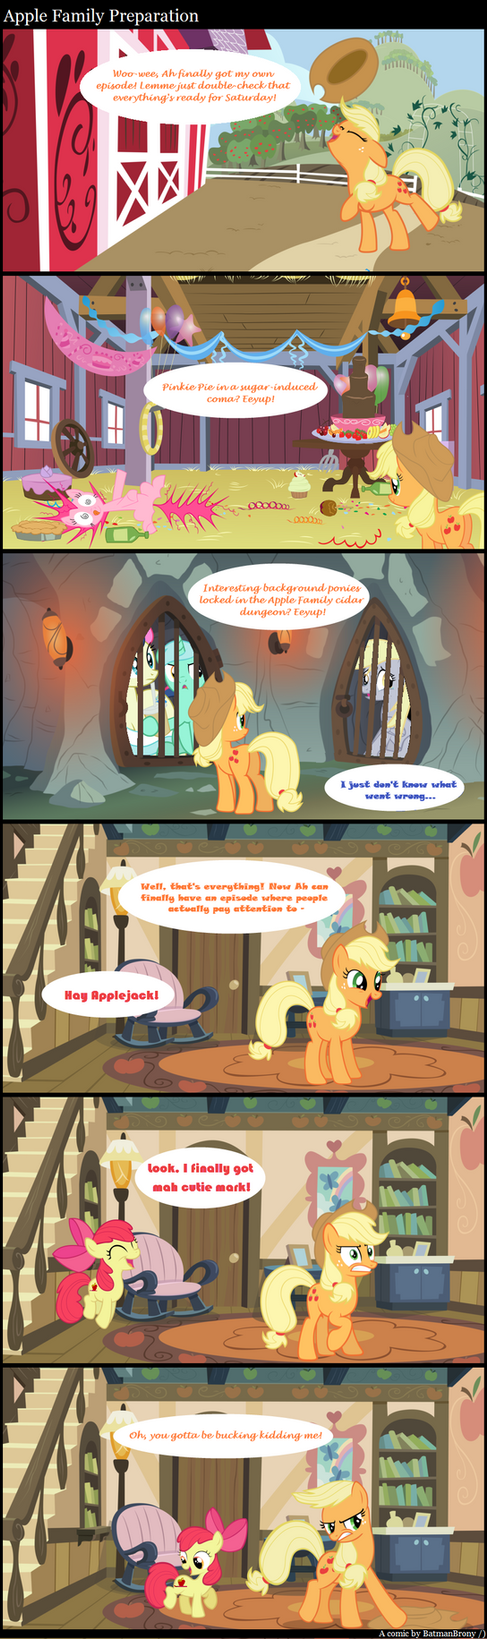 Apple Family Preparation by BatmanBrony